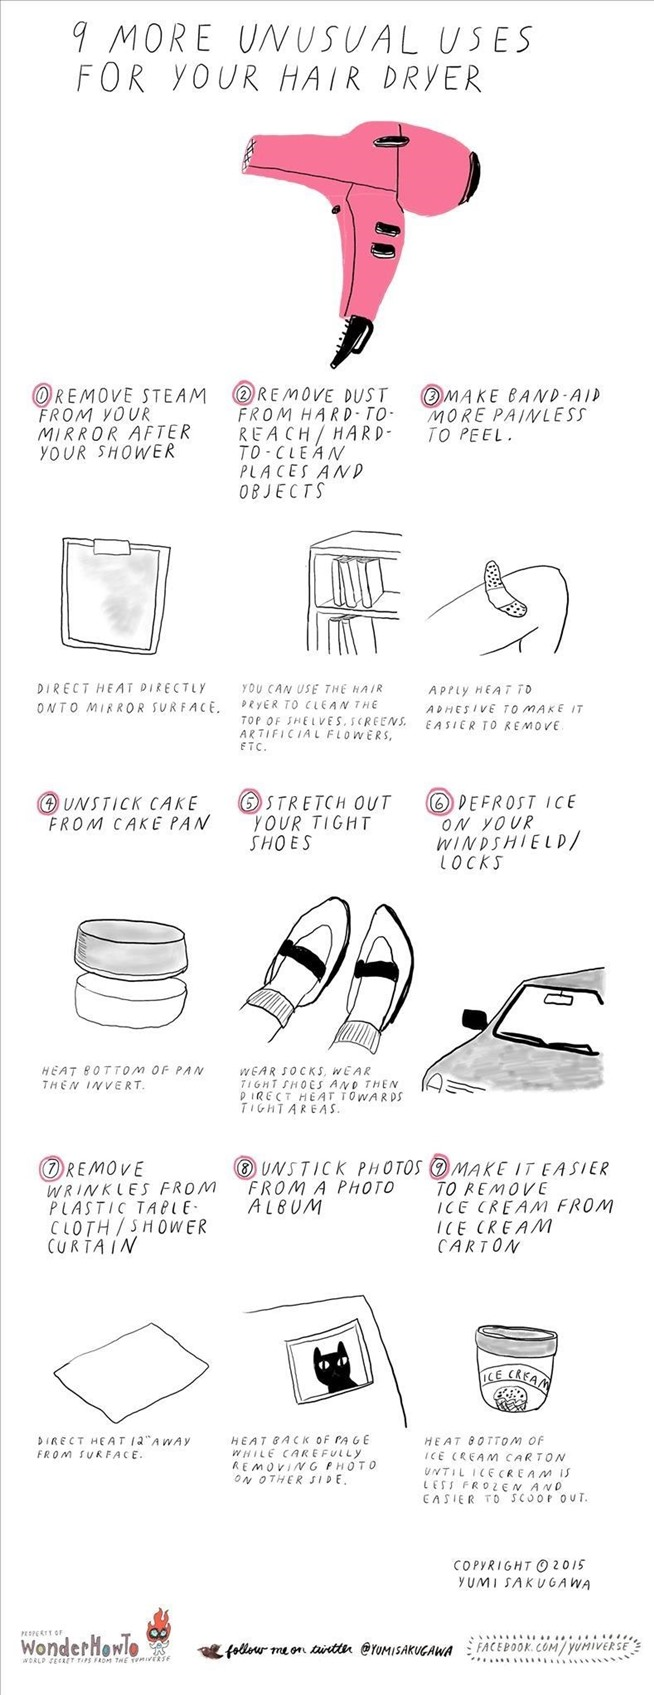 9 more unusual uses for your hair dryer the secret yumiverse - Unusual uses for a hair dryer ...